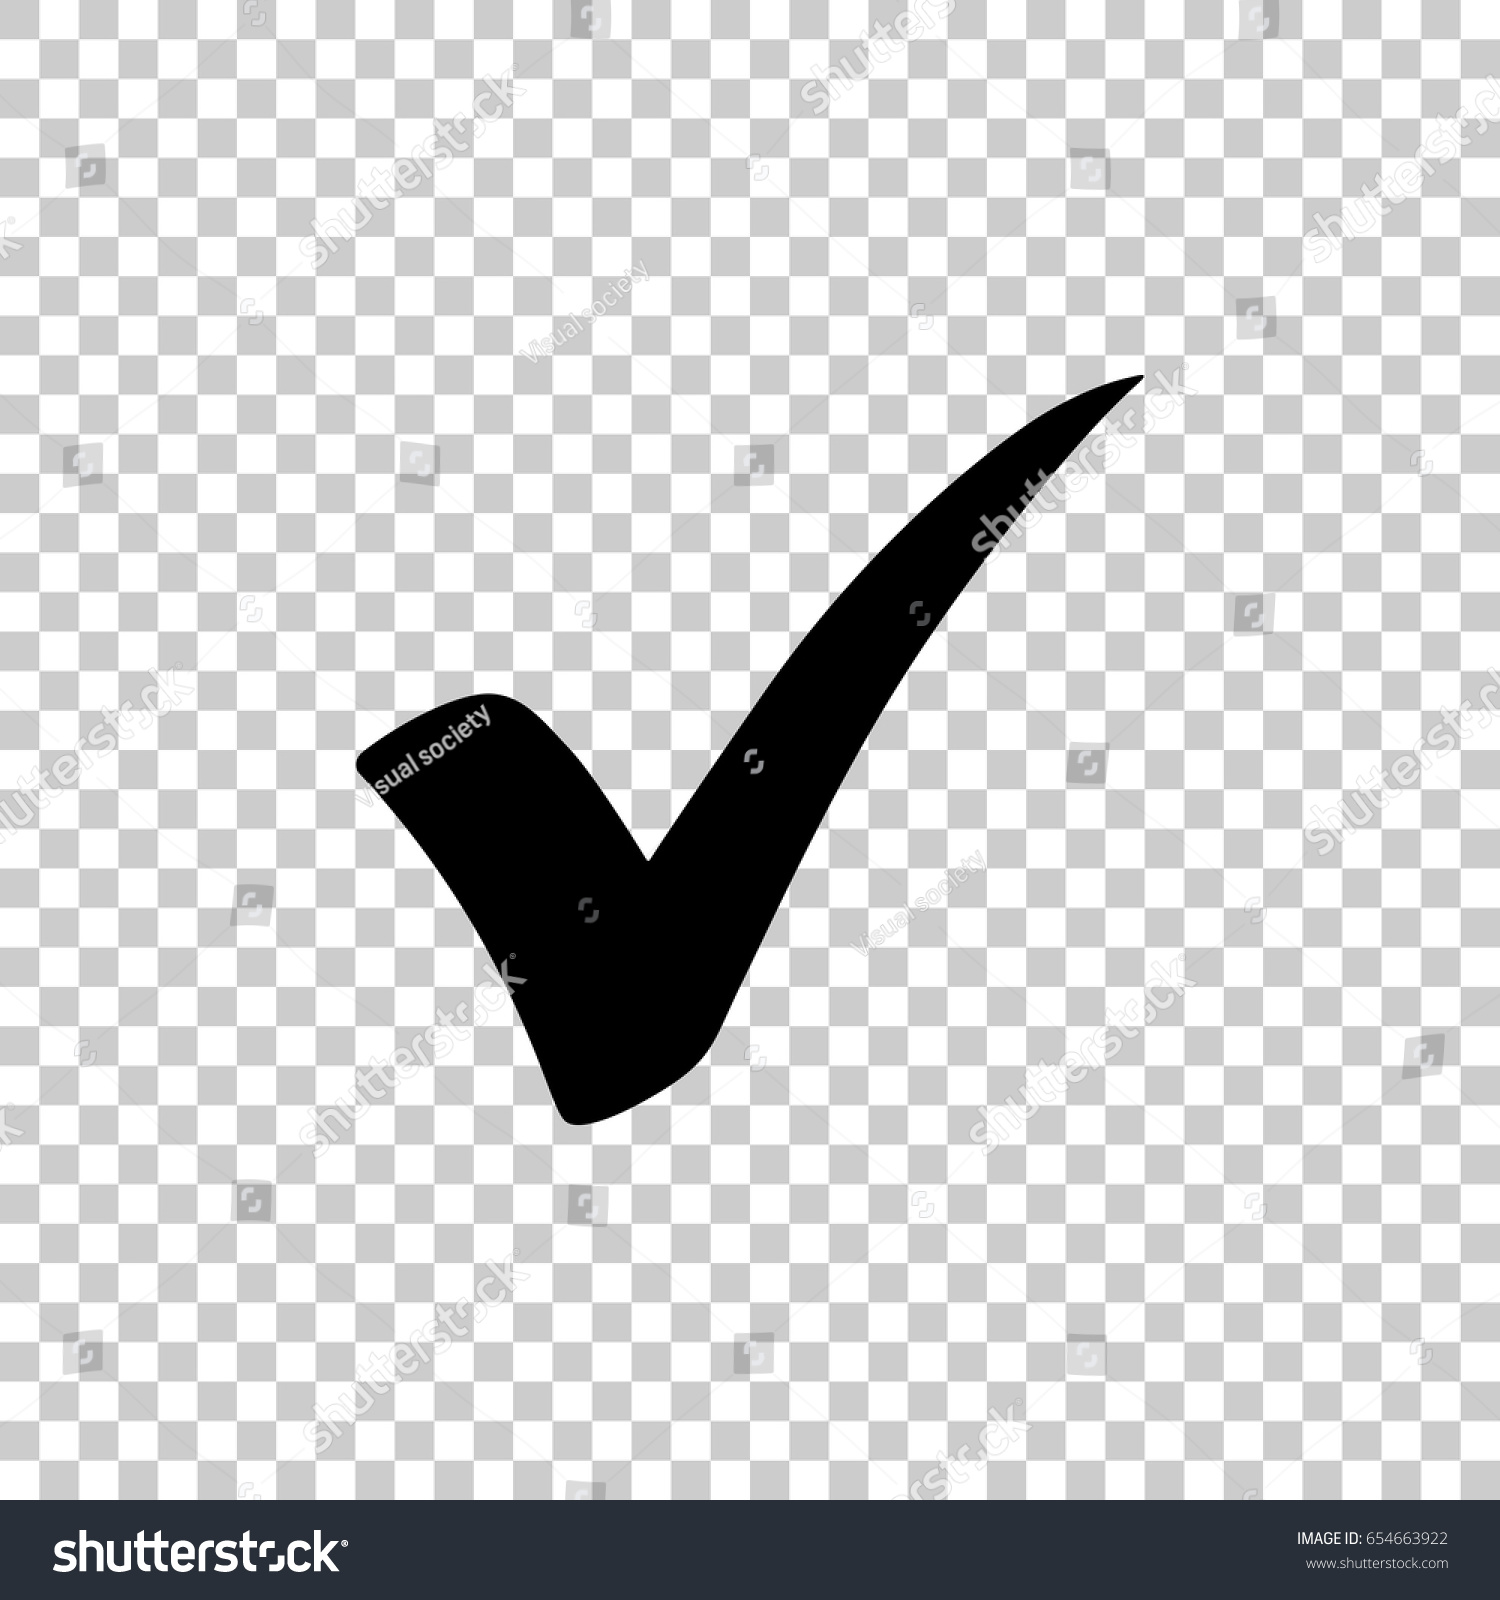 Check Mark Clipart Transparent.